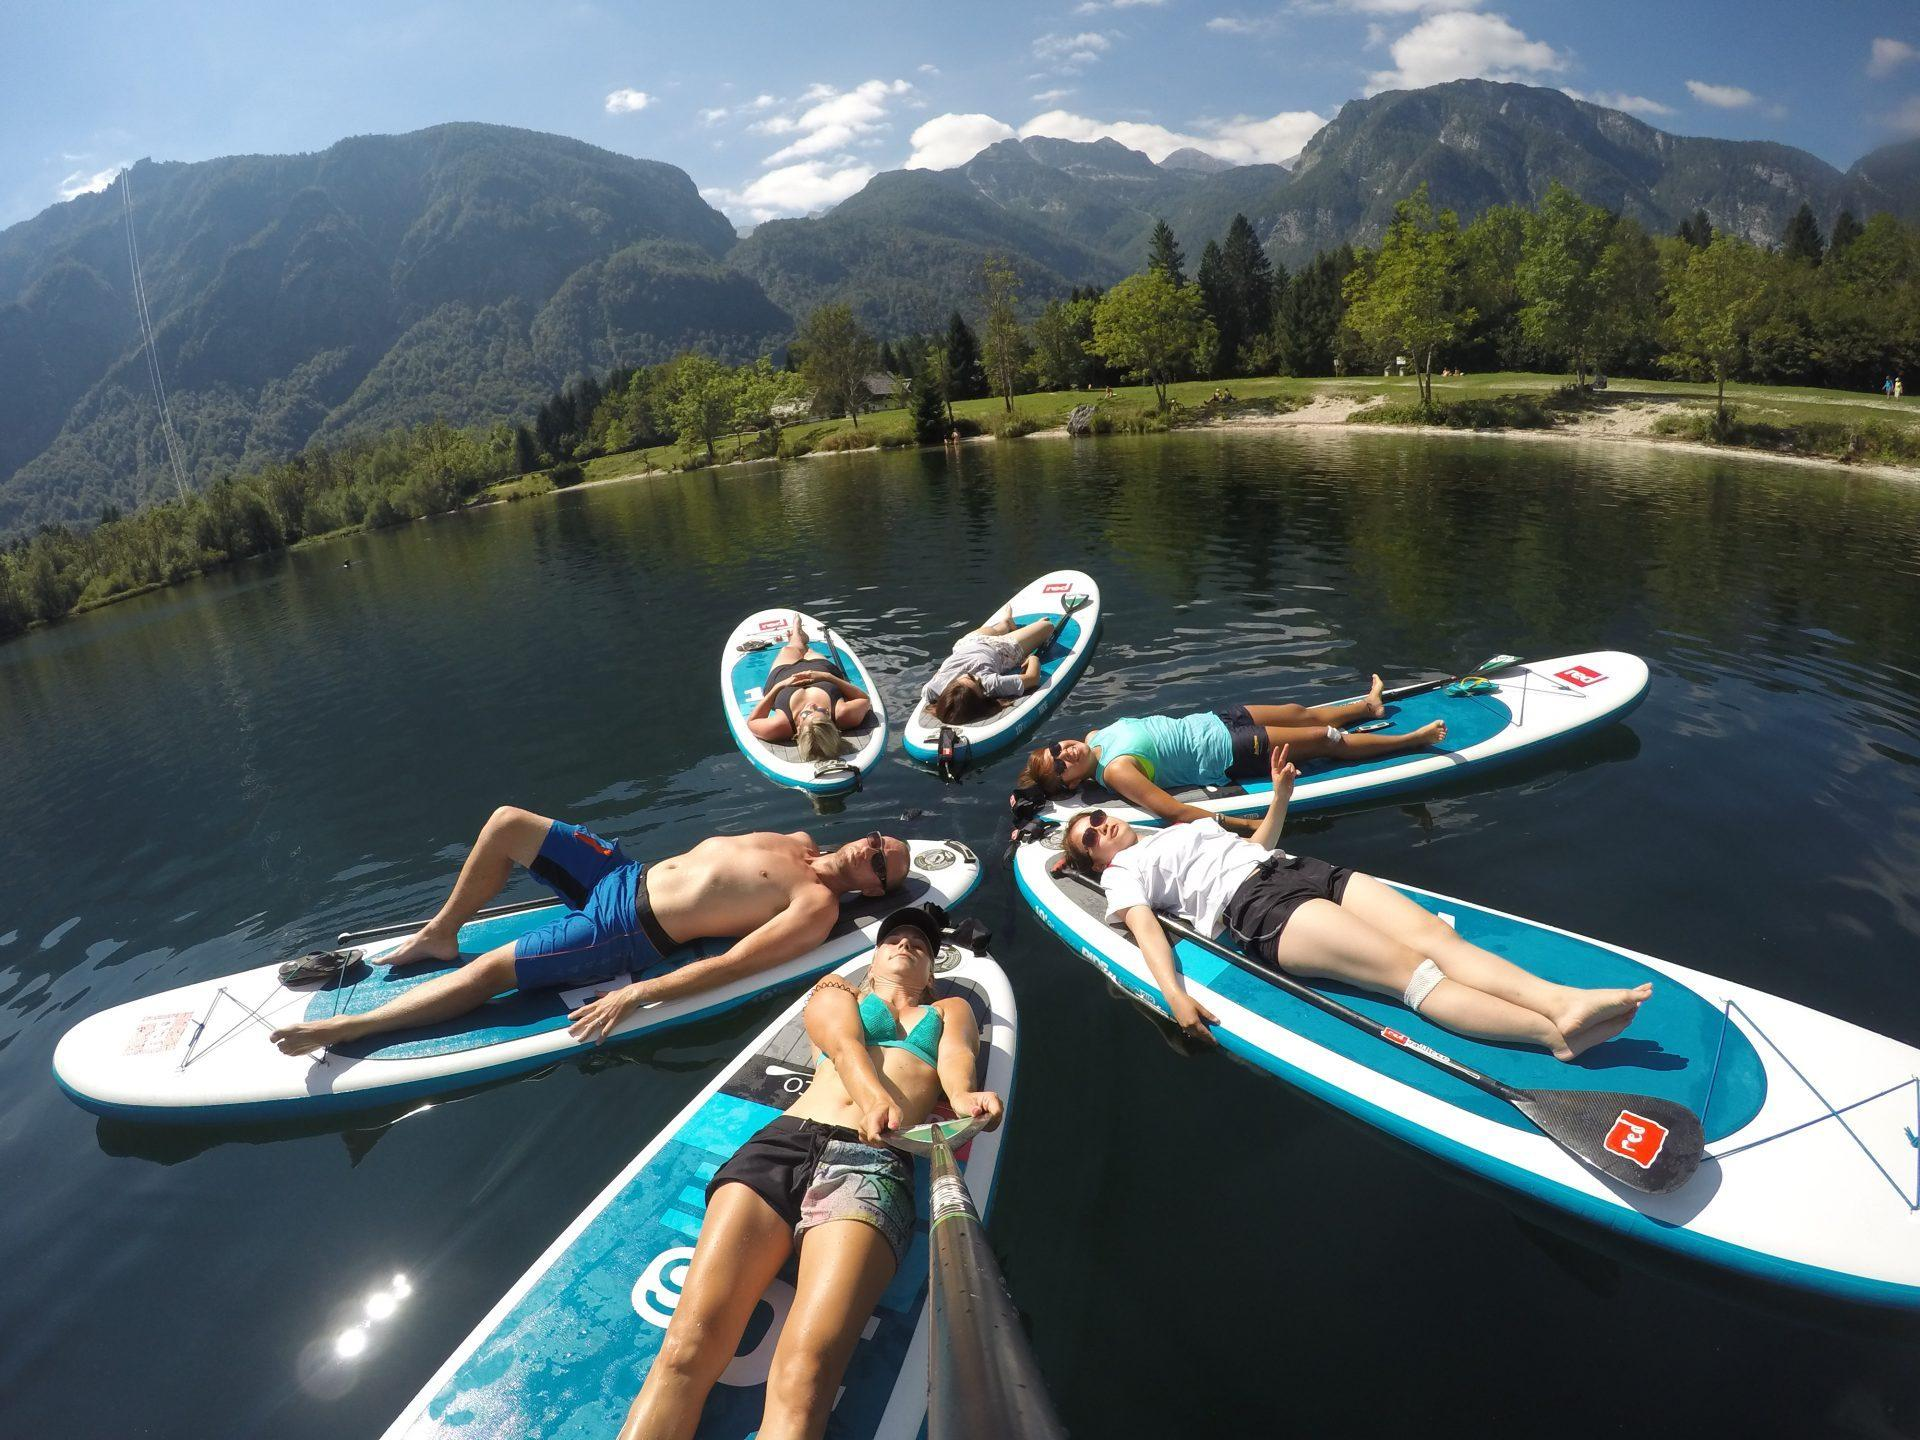 Relax on sup boards